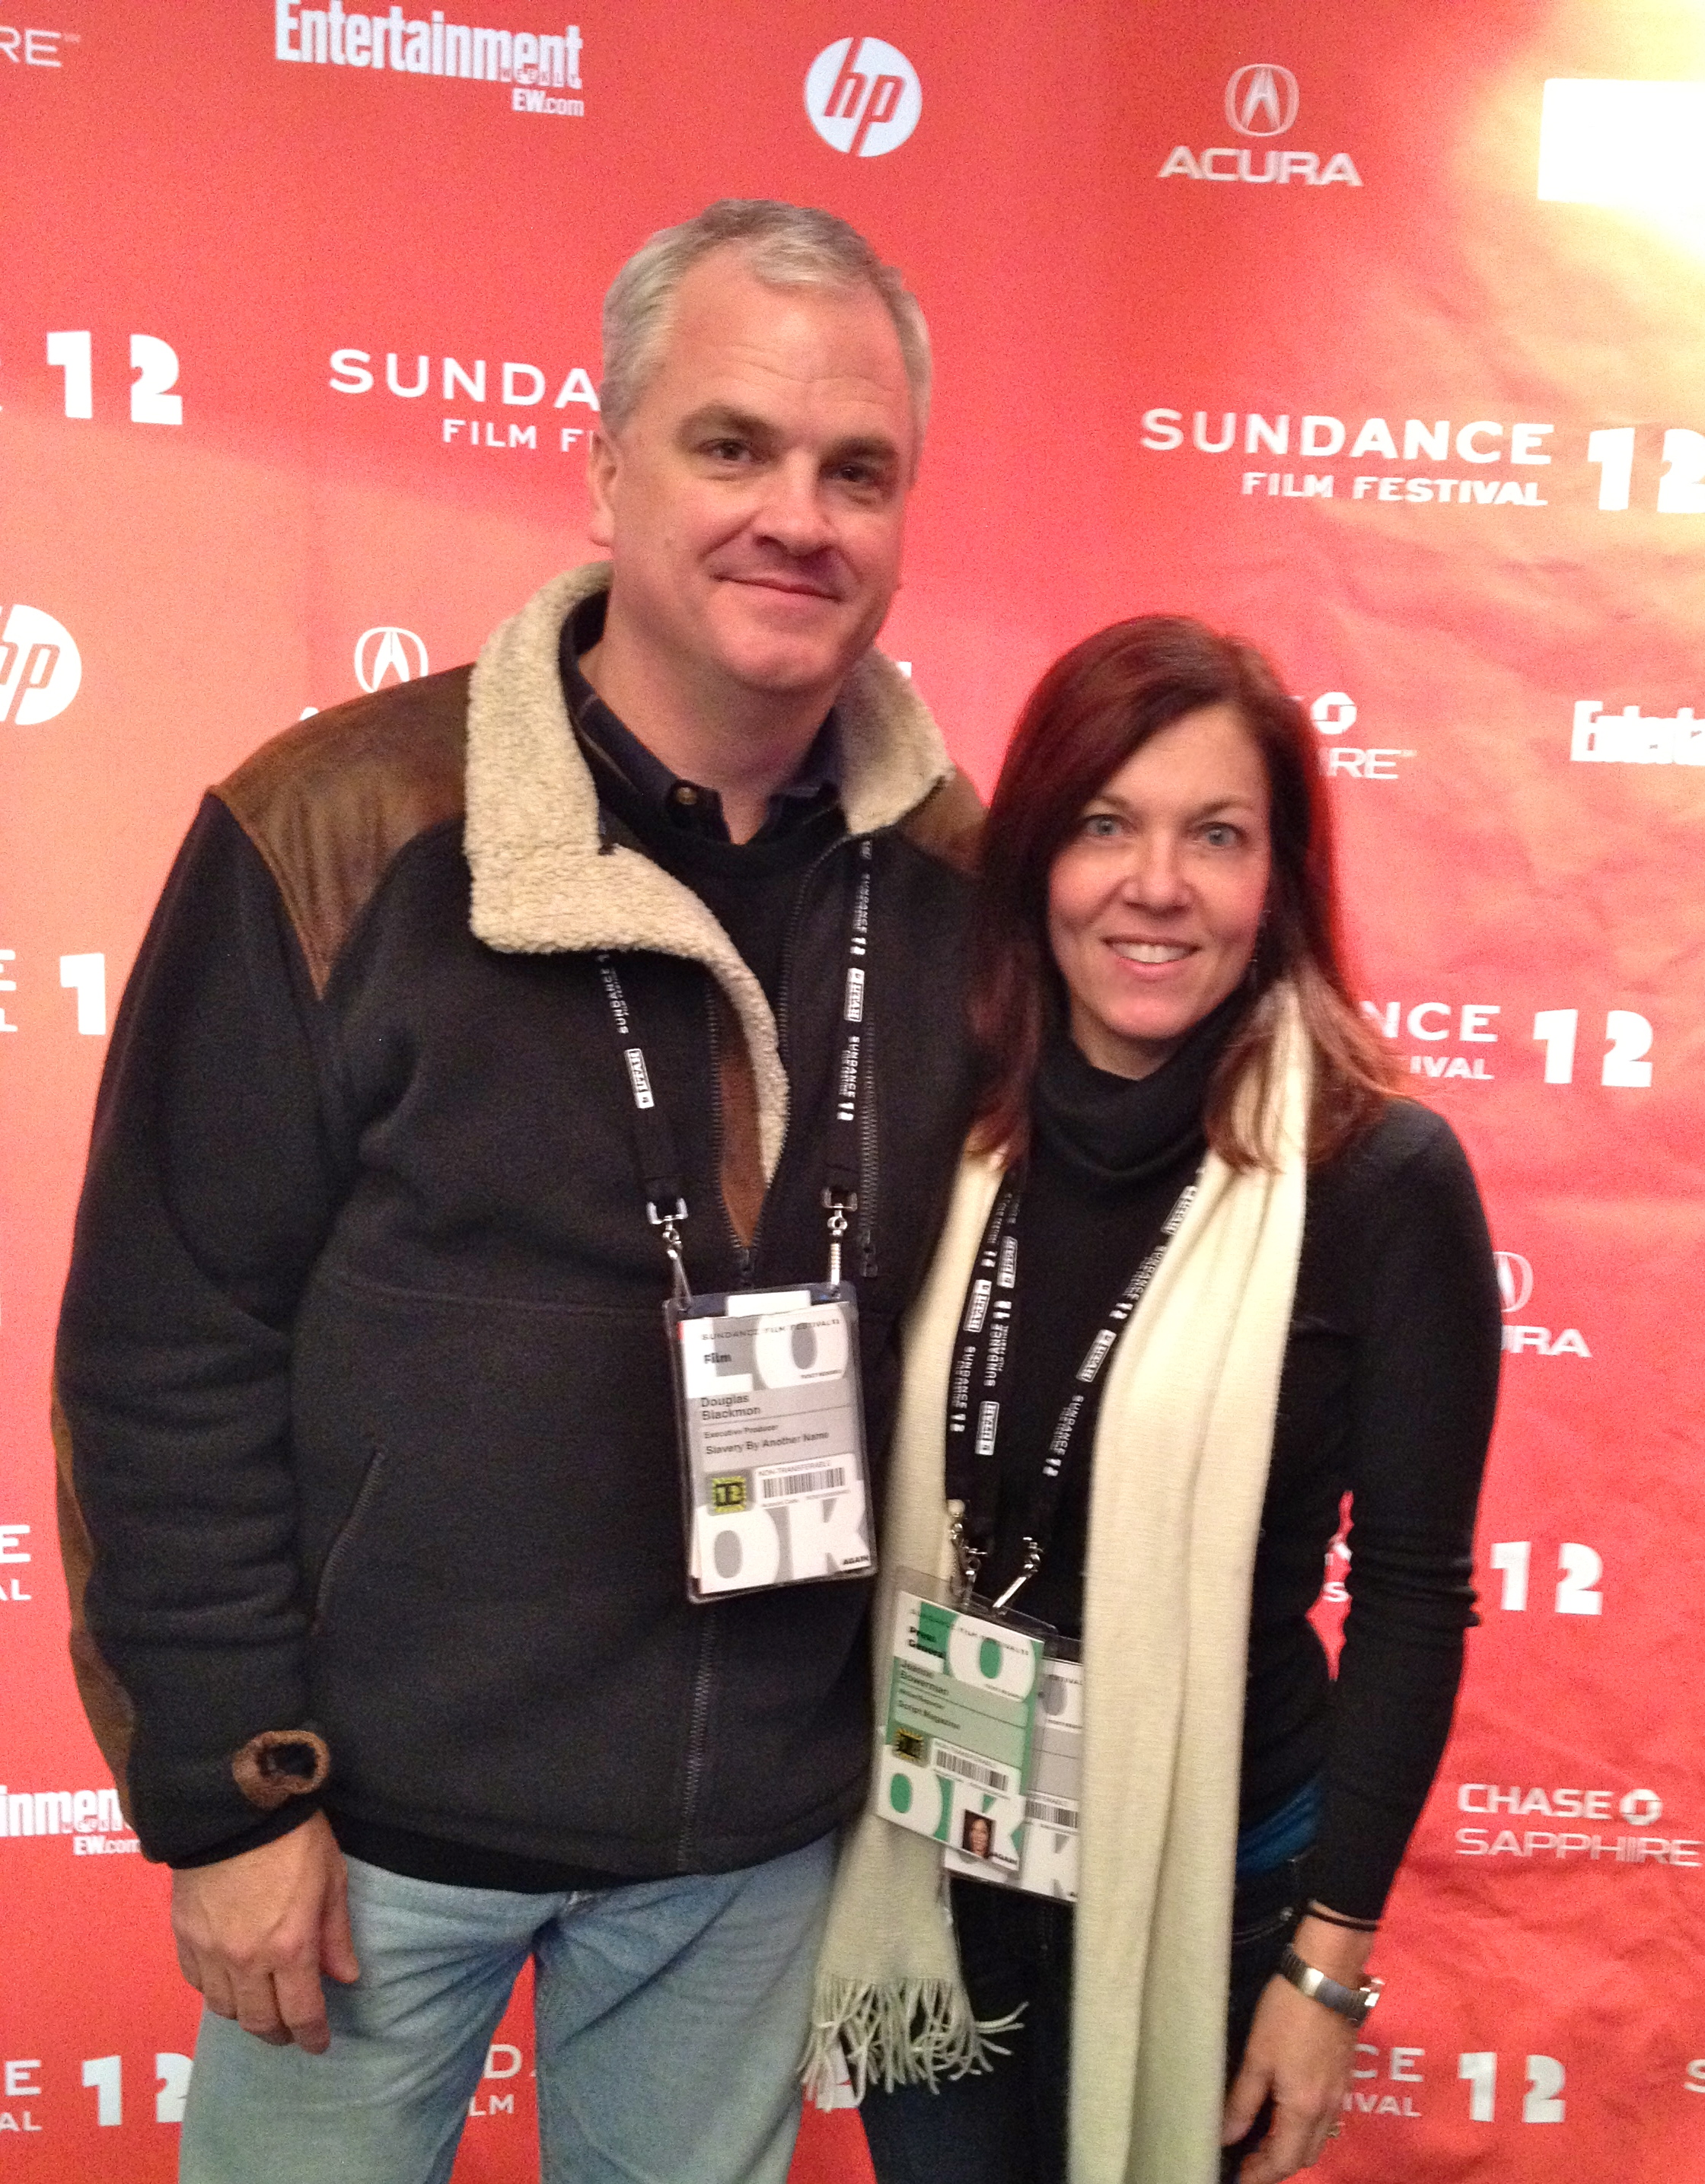 Douglas and Jeanne at the Sundance Film Festival. Photo courtesy of Scriptmag